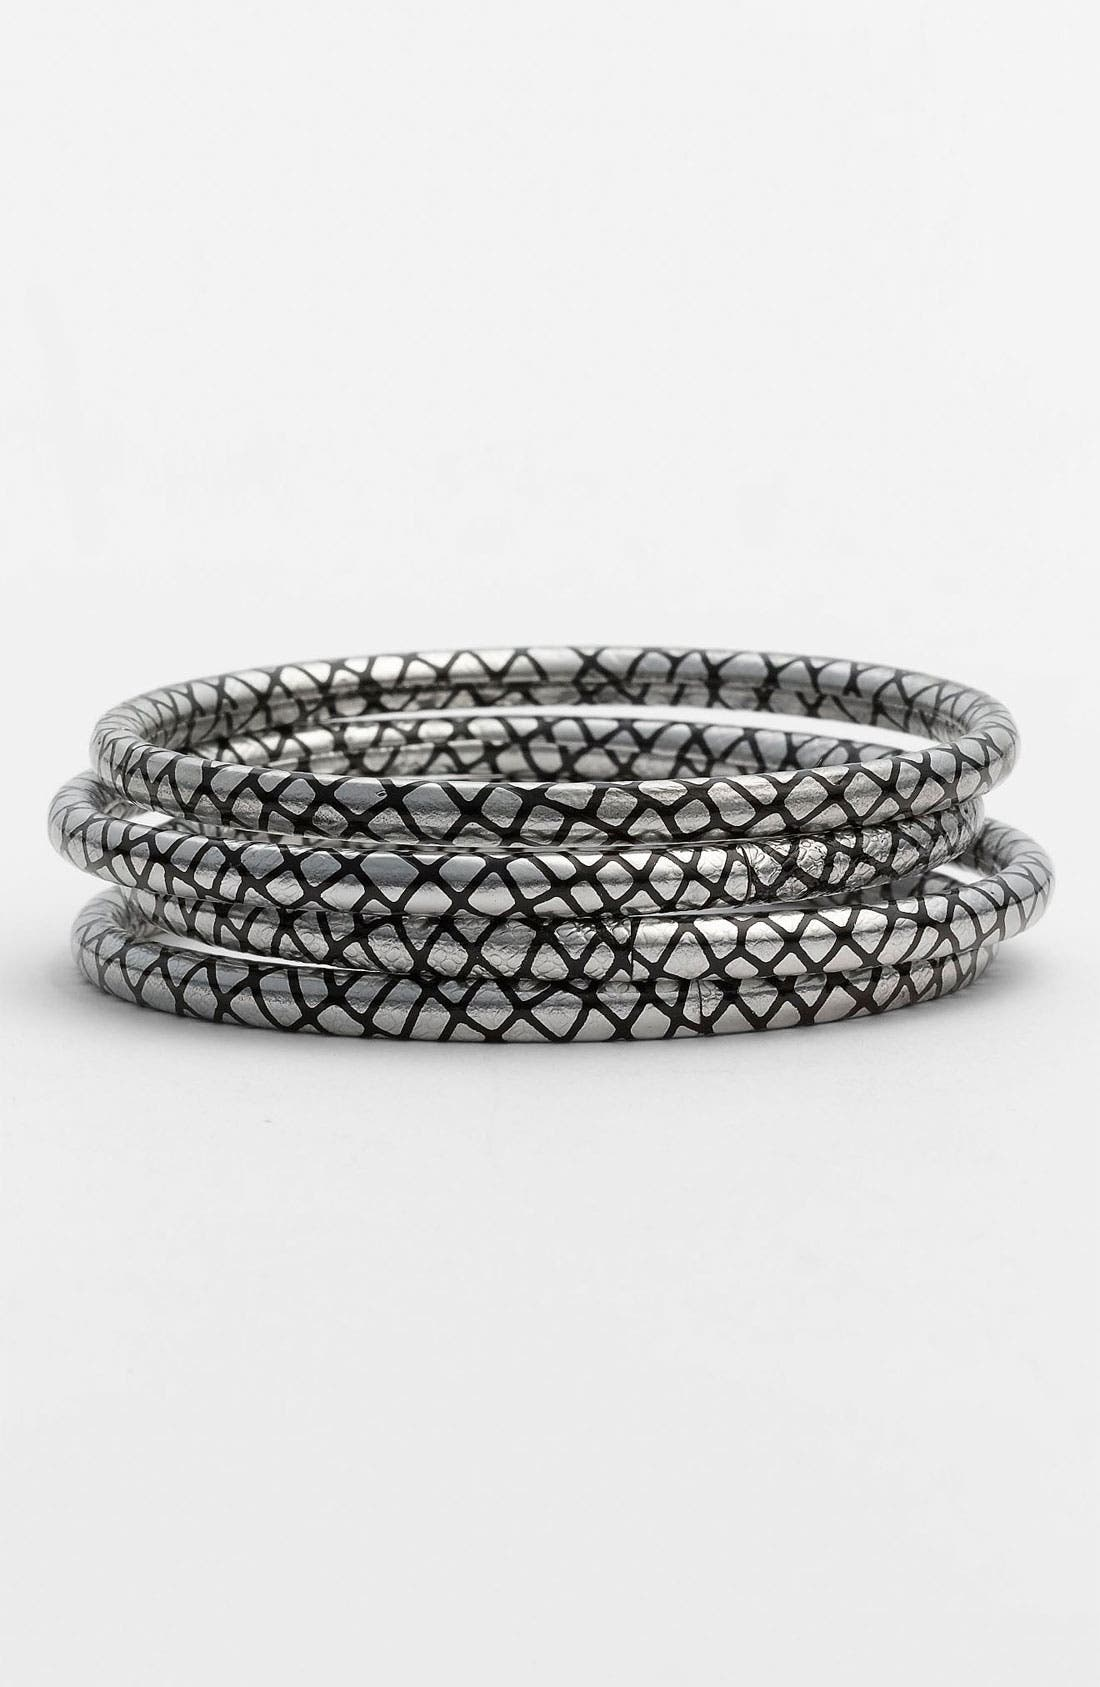 Main Image - Chamak by Priya Kakkar Fishnet Bangles (Set of 4)